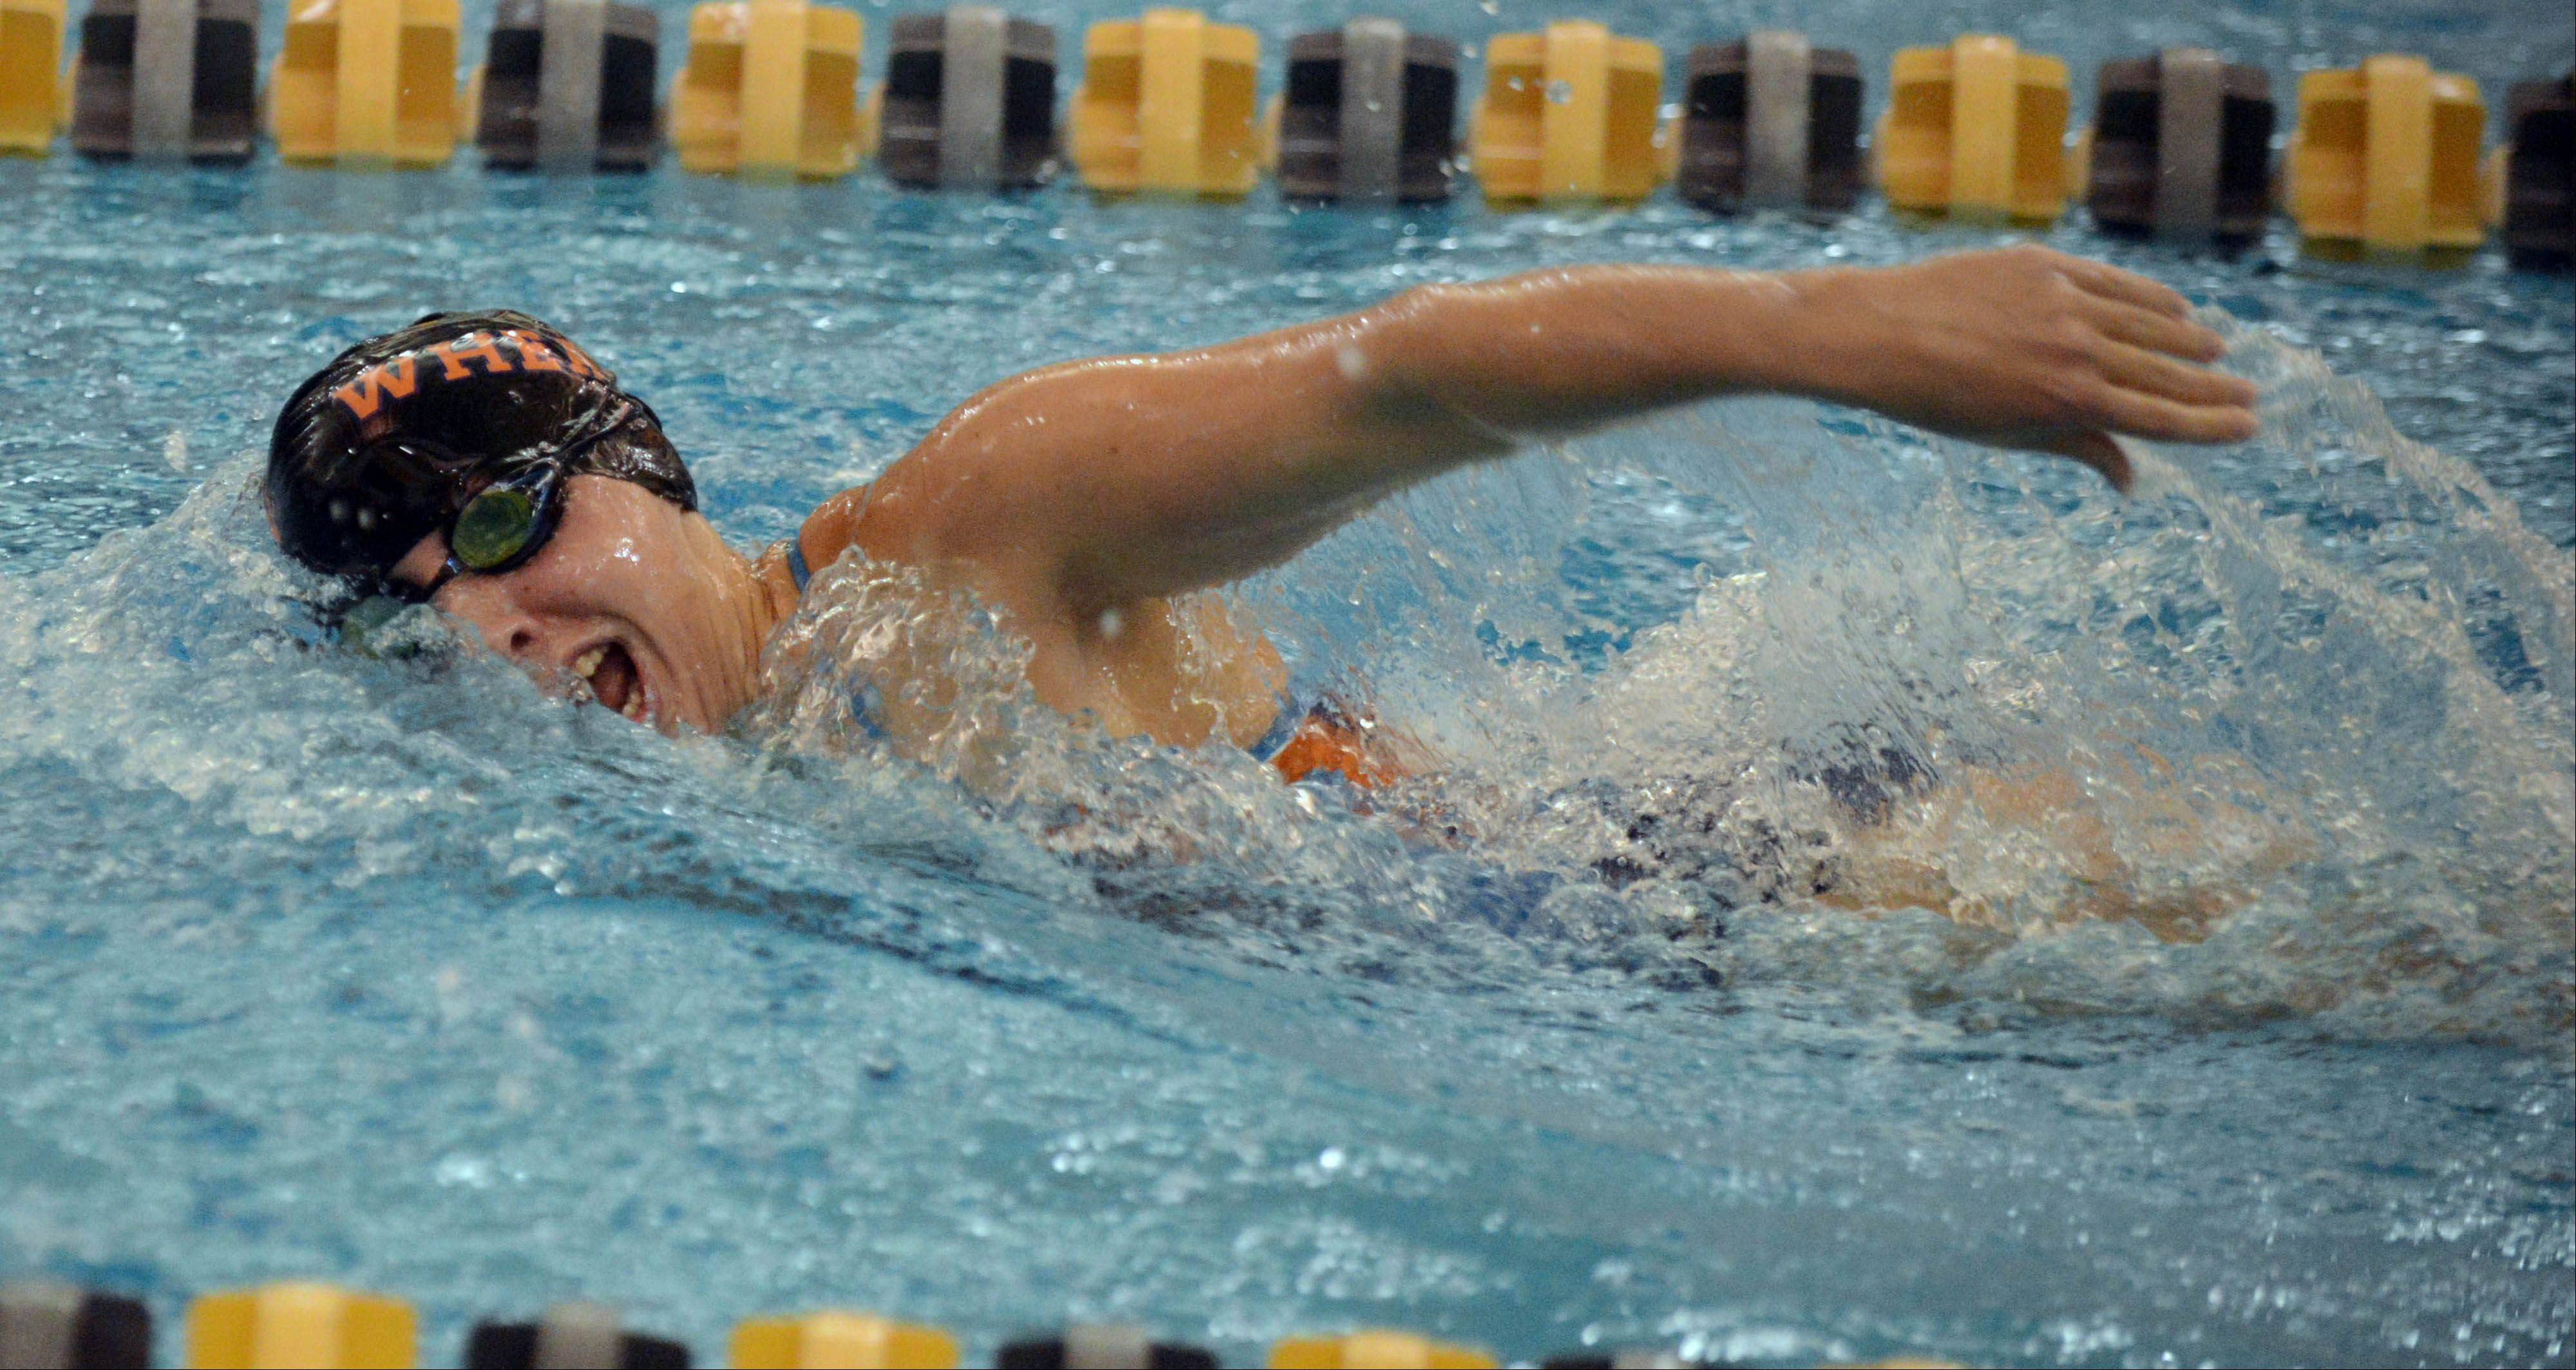 Amanda Stiegal of Wheaton swims the 200 Free during the Neuqua Valley girls swimming invitational Saturday.